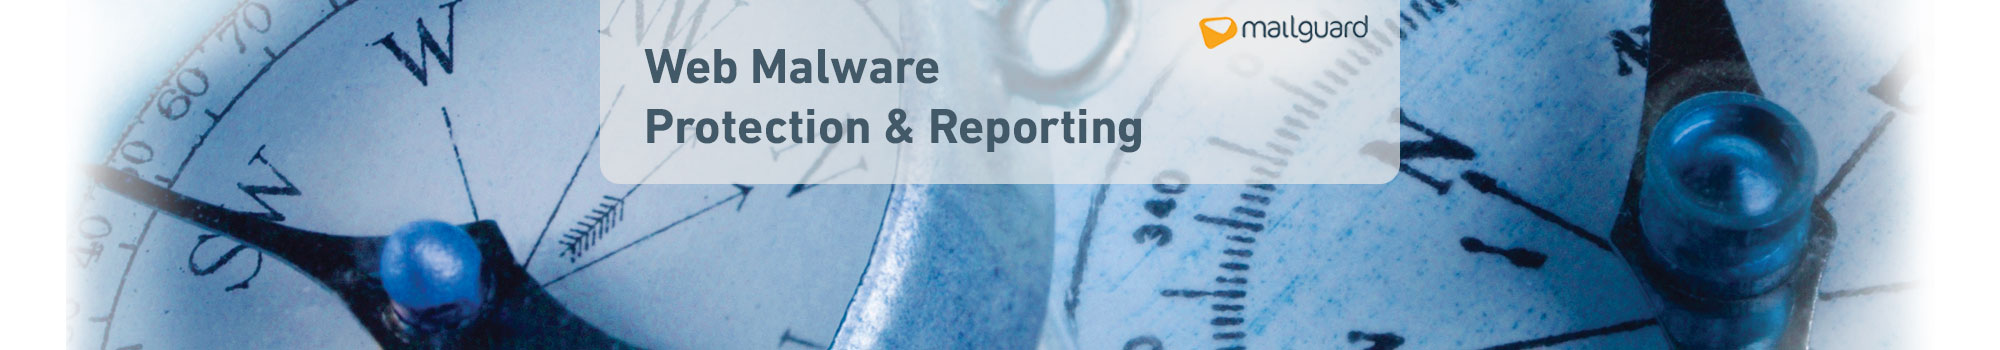 Web Malware Protection & Reporting